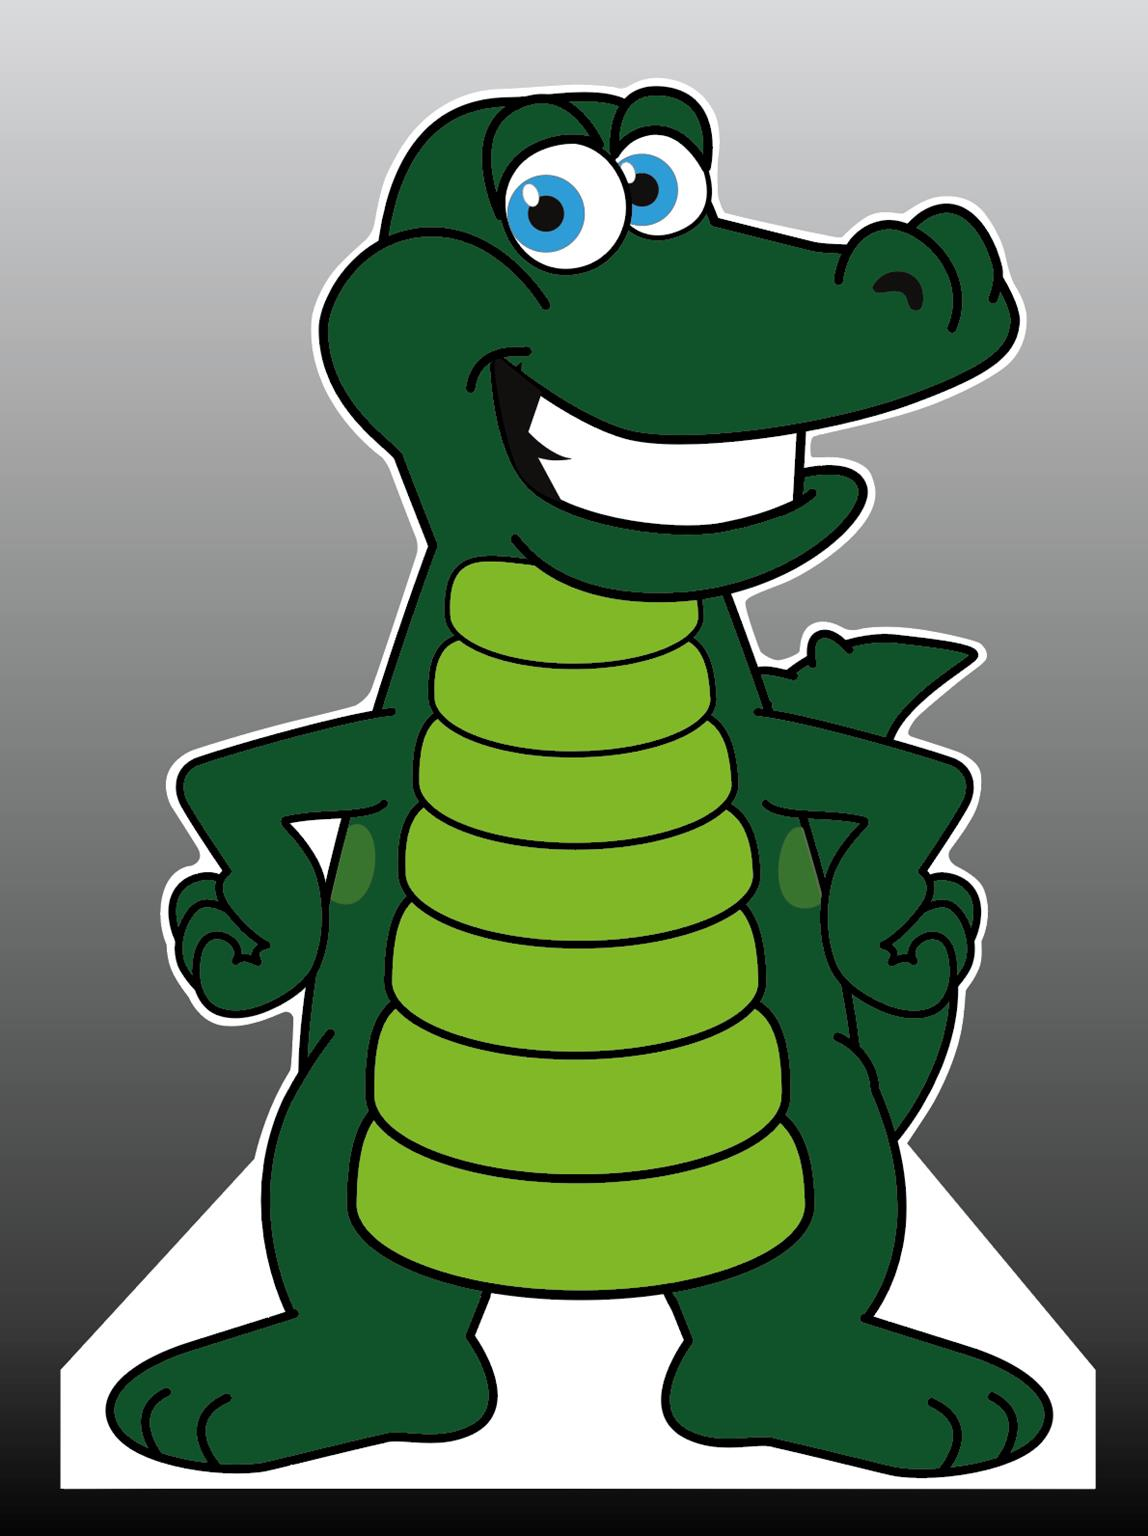 Gator Mascot Cut-Out Standee Life-Size